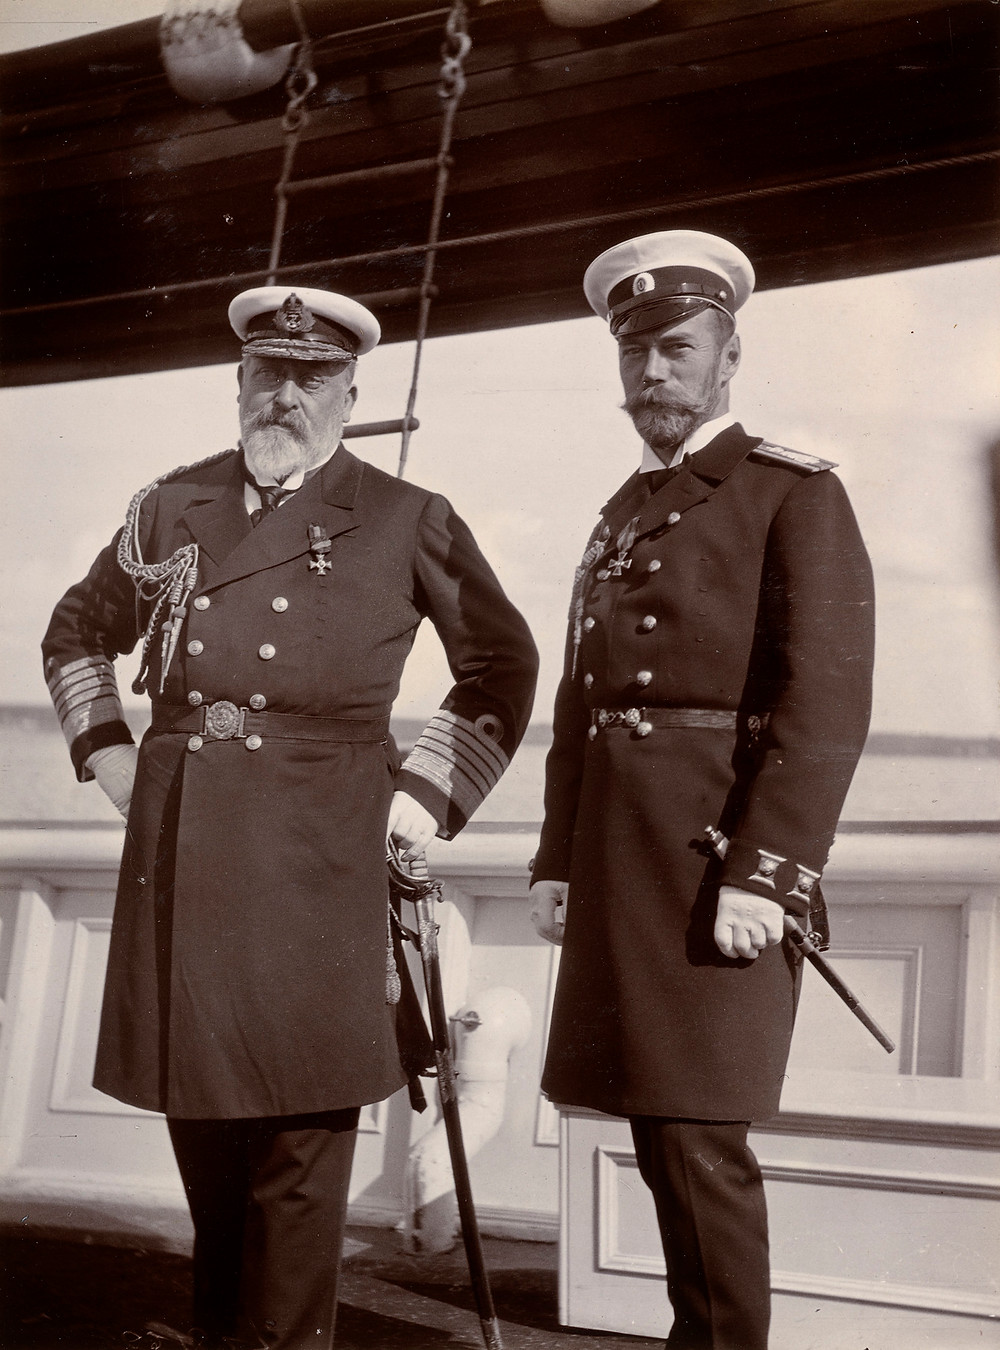 King Edward VII and Tsar Nicholas II, Jun 1908. Royal Collection Trust/© Her Majesty Queen Elizabeth II 2019